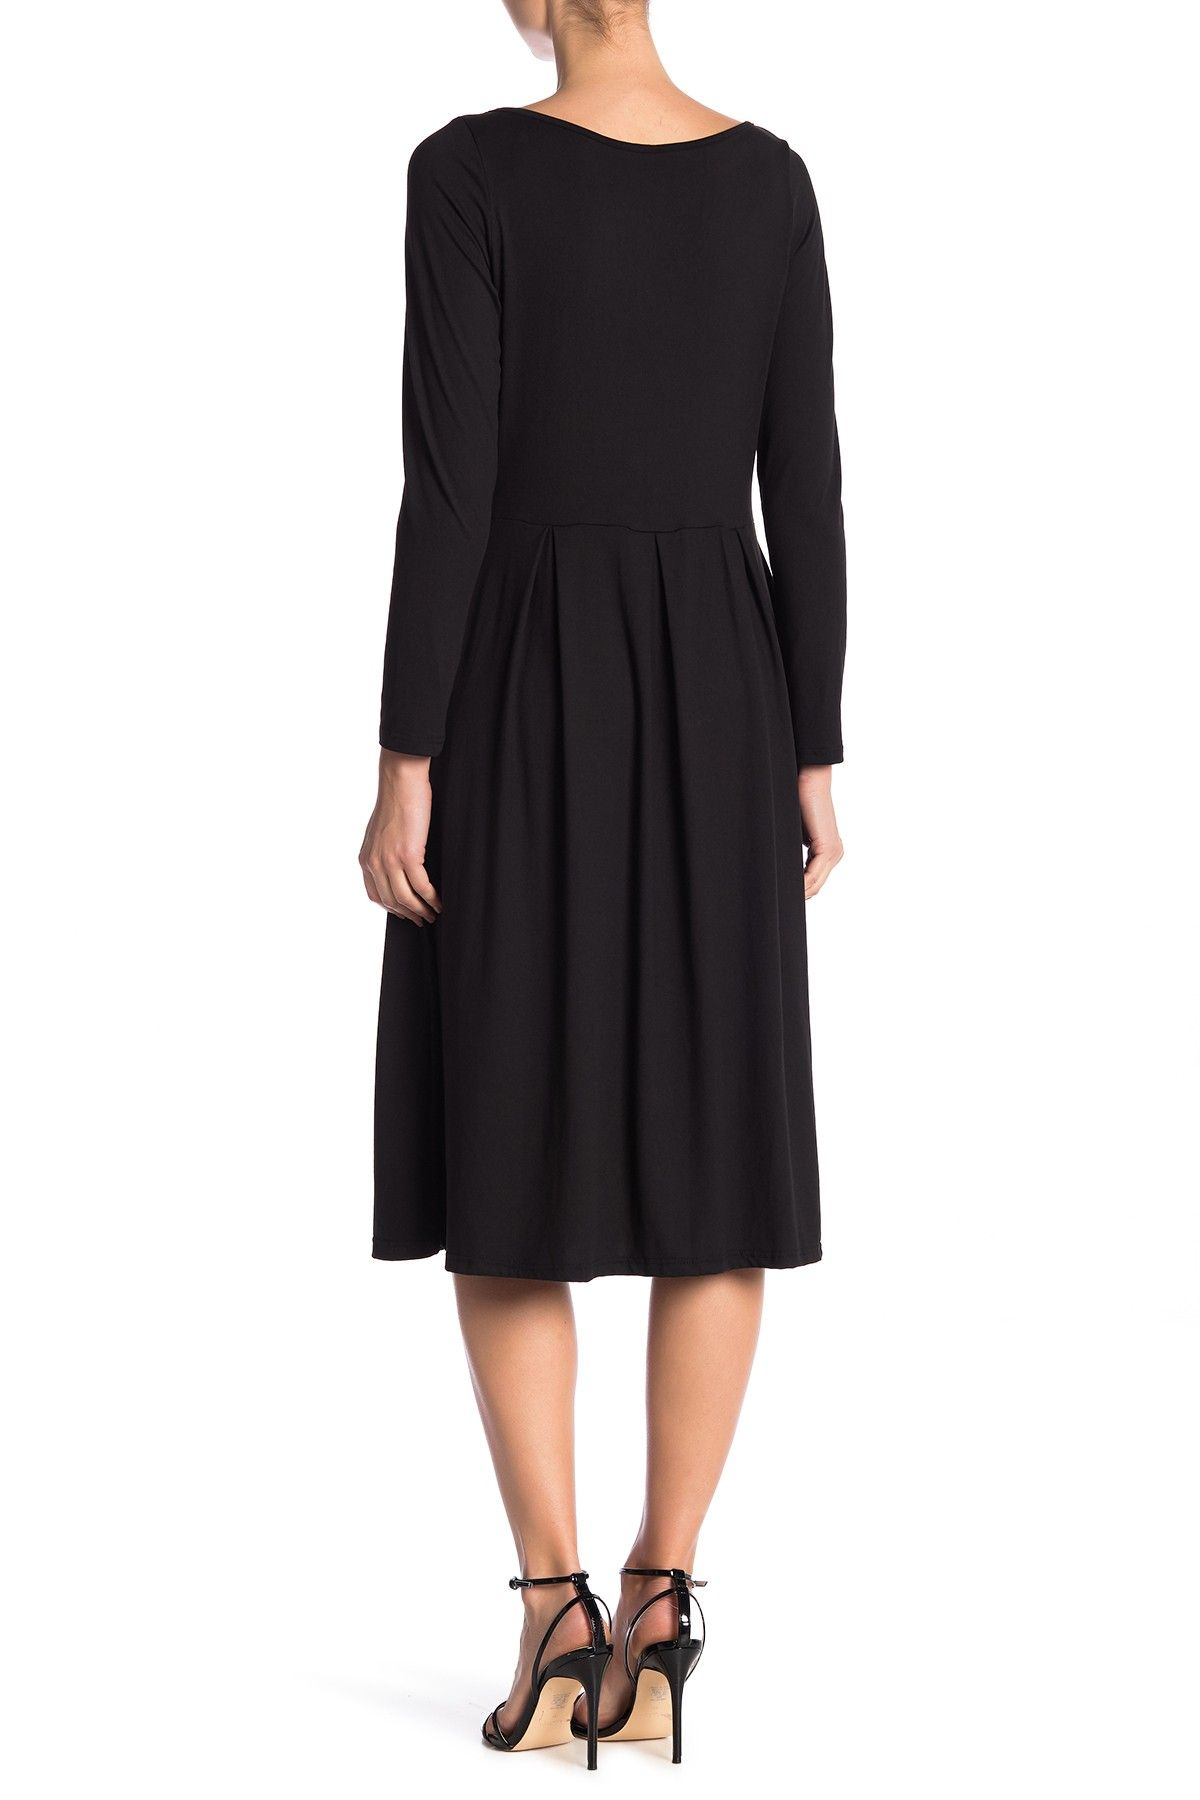 416d644d02 Long Sleeve Fit and Flare Midi Dress (Plus Size Available) by 24 7 Comfort  on  nordstrom rack